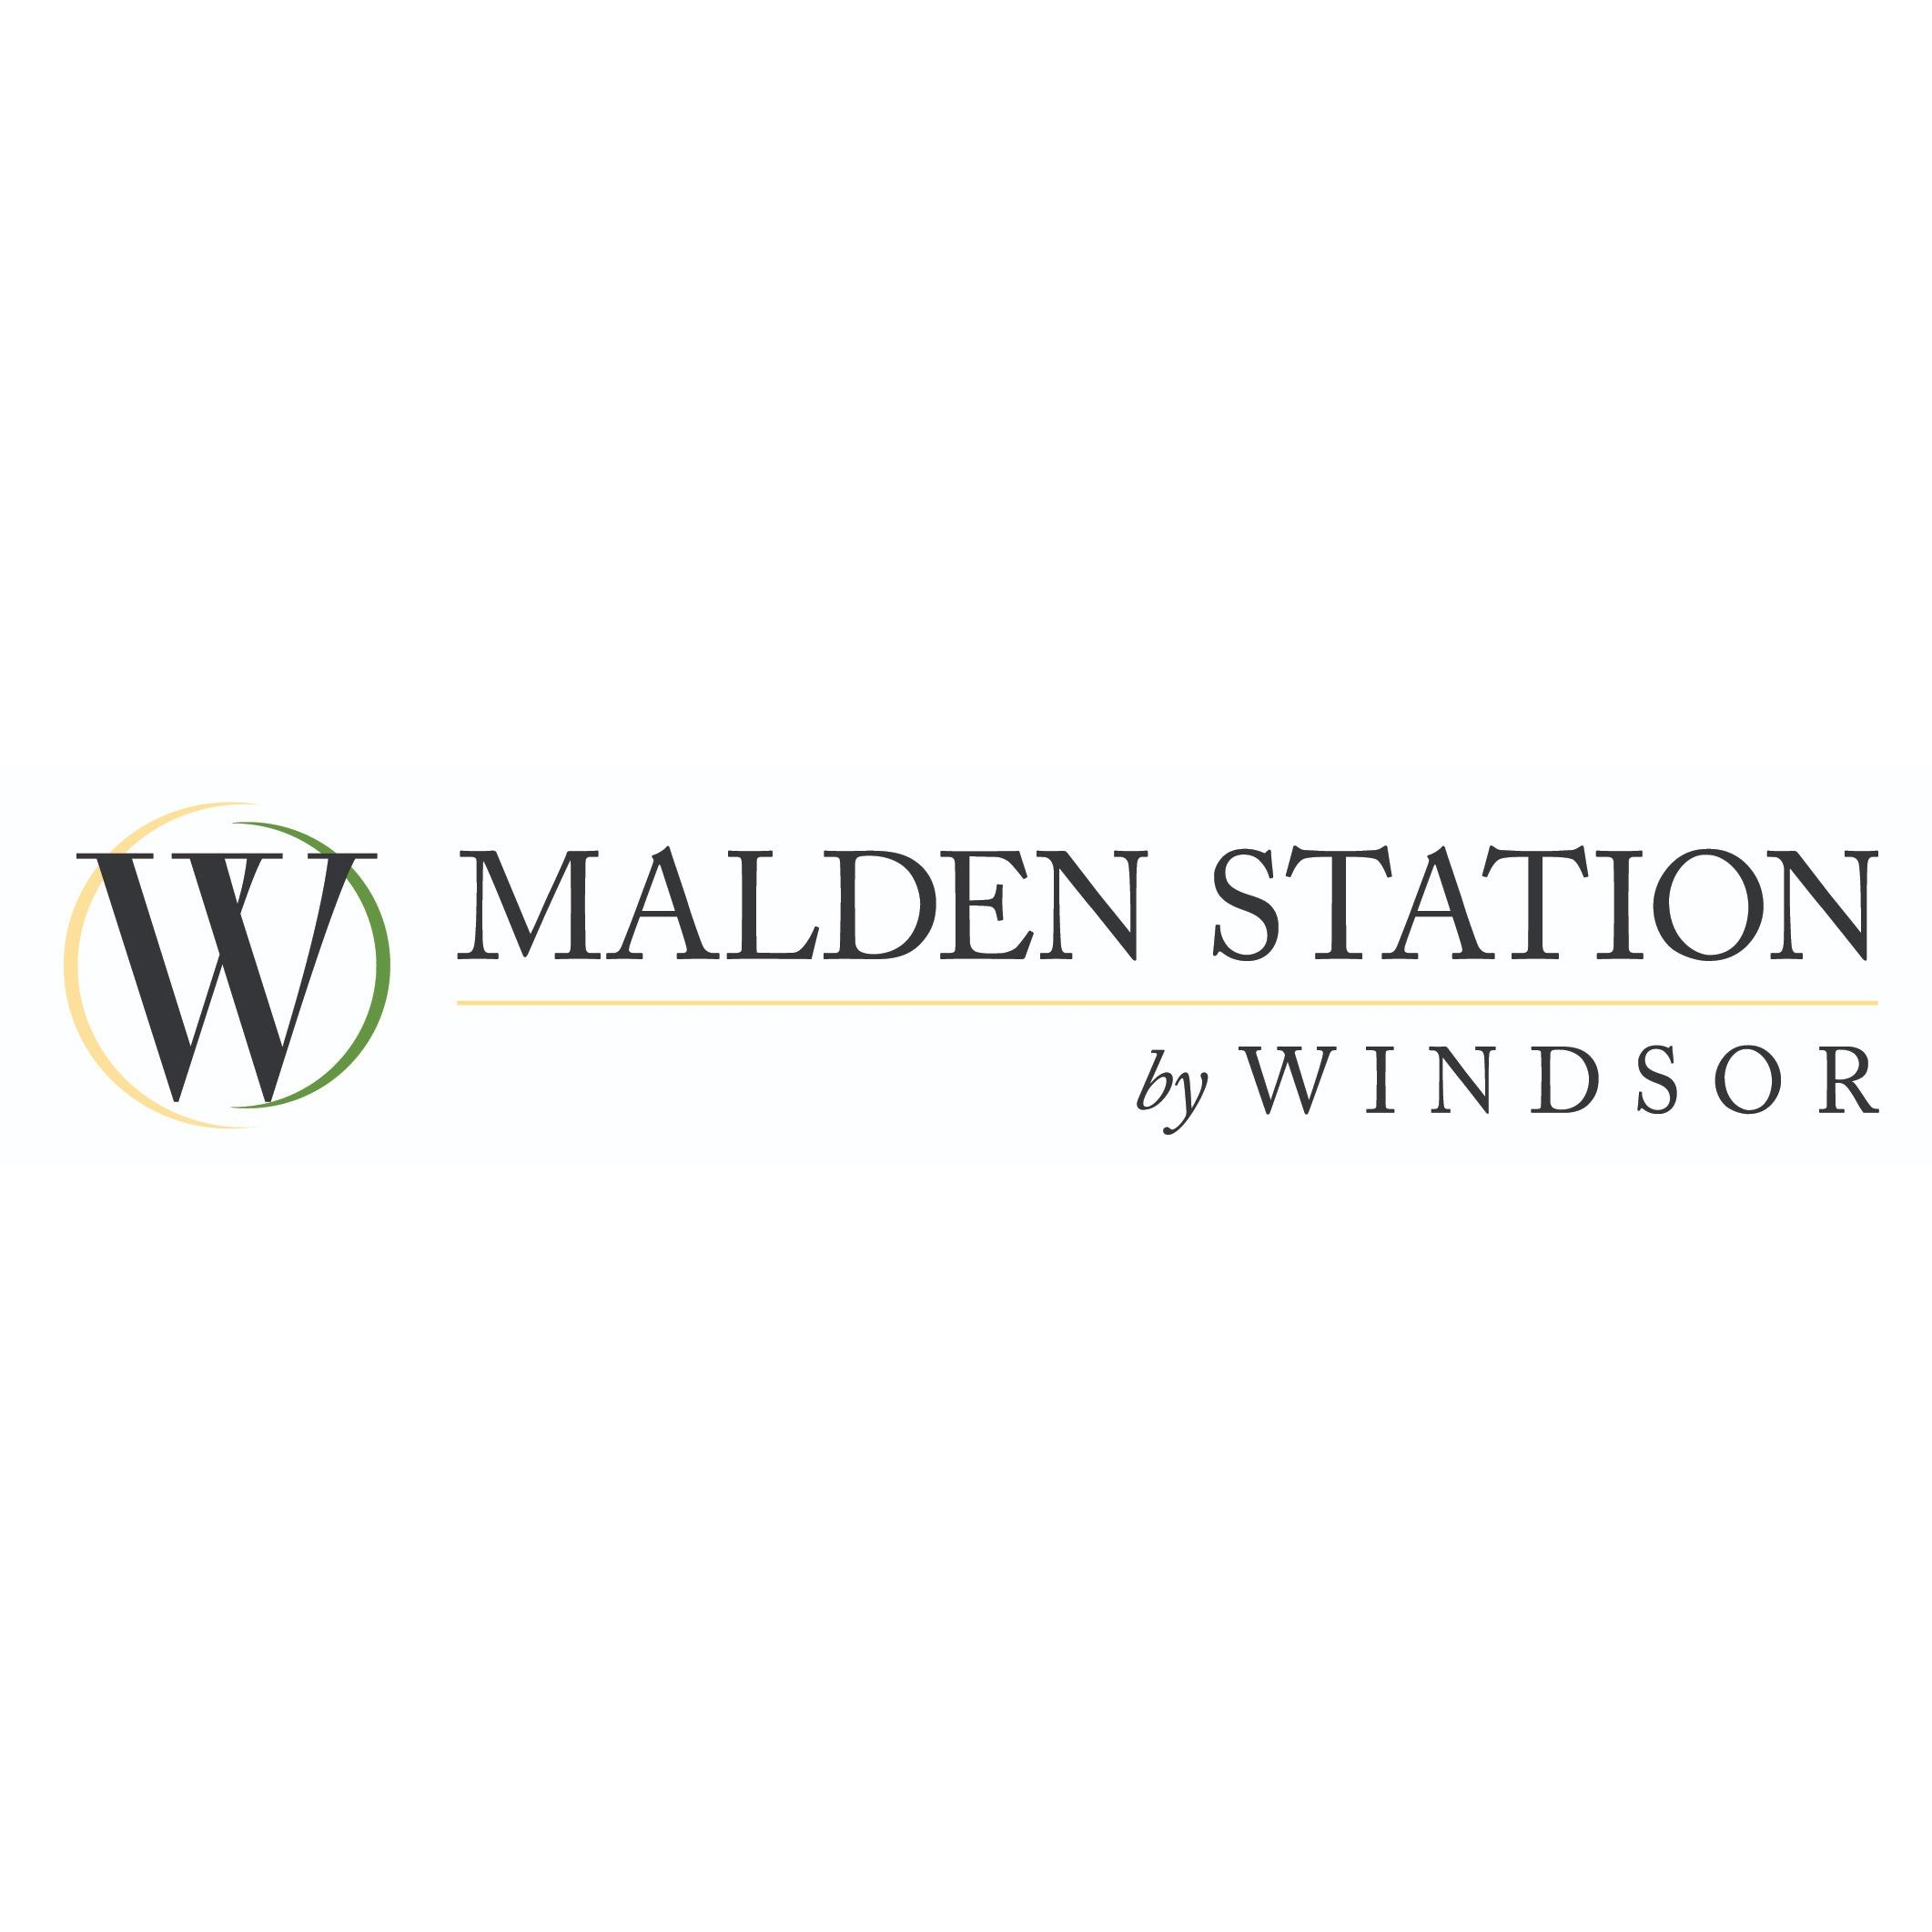 Malden Station by Windsor